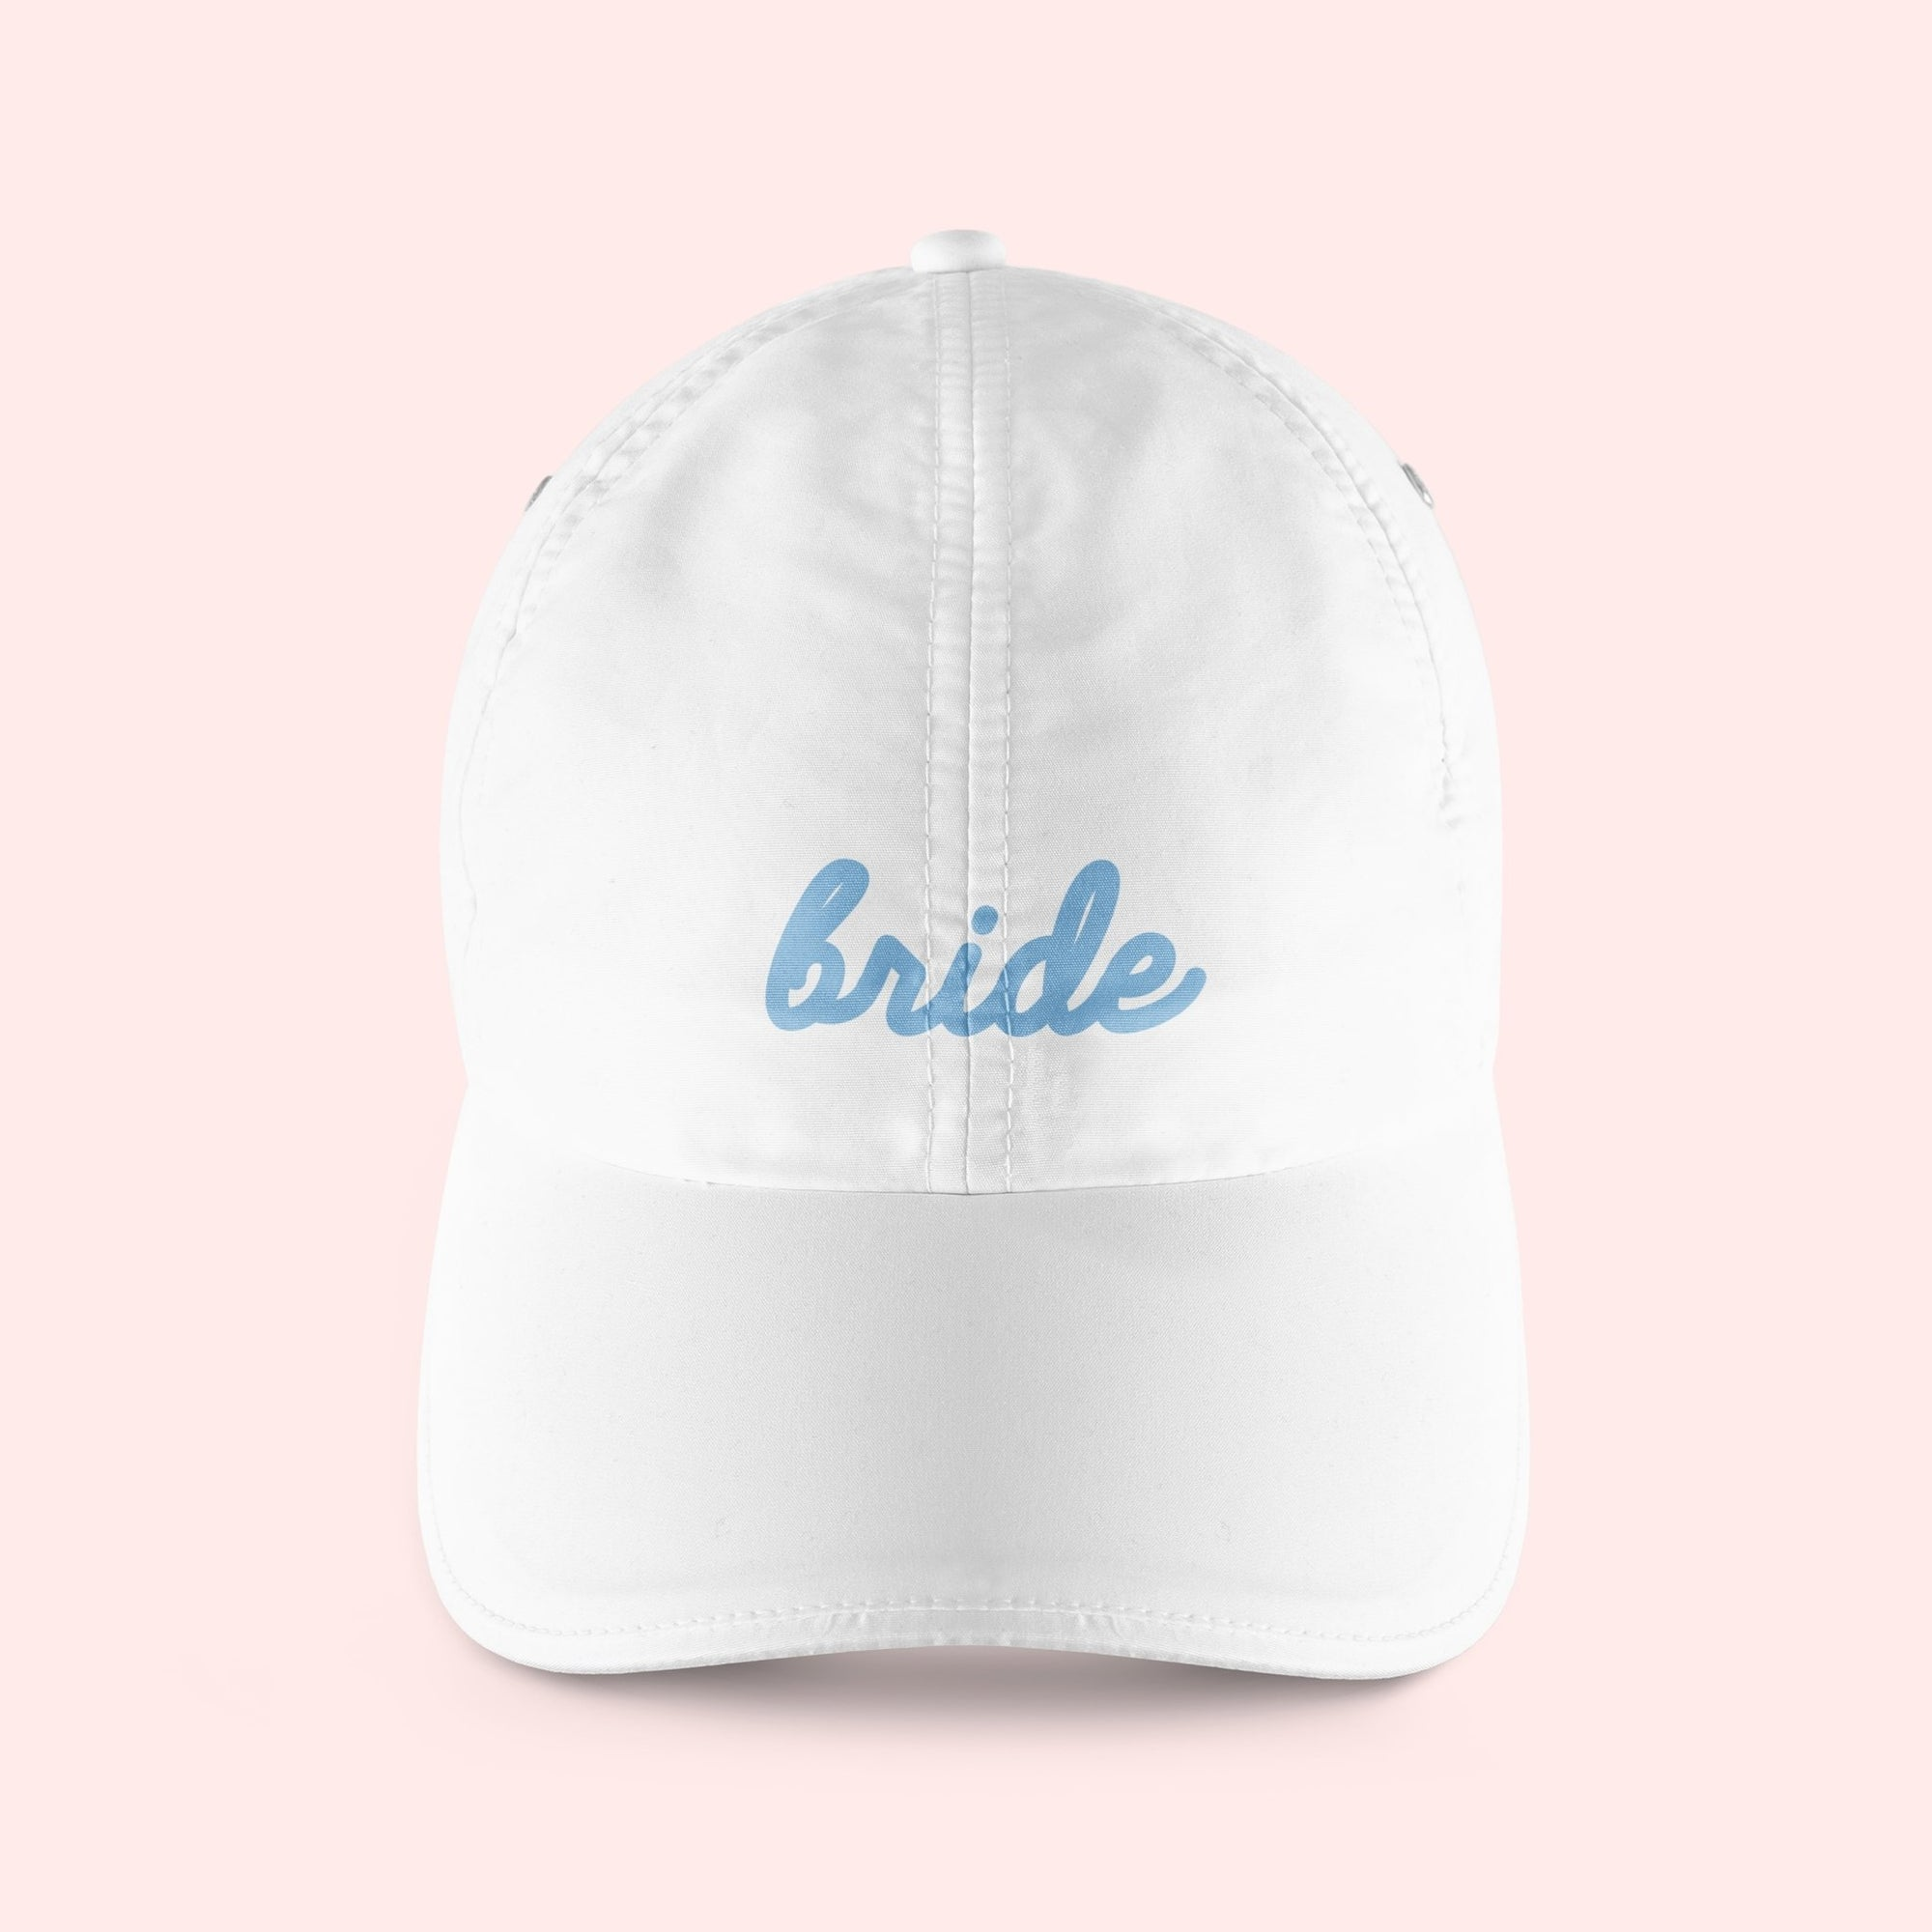 Bride Baseball Hat - Sprinkled With Pink #bachelorette #custom #gifts